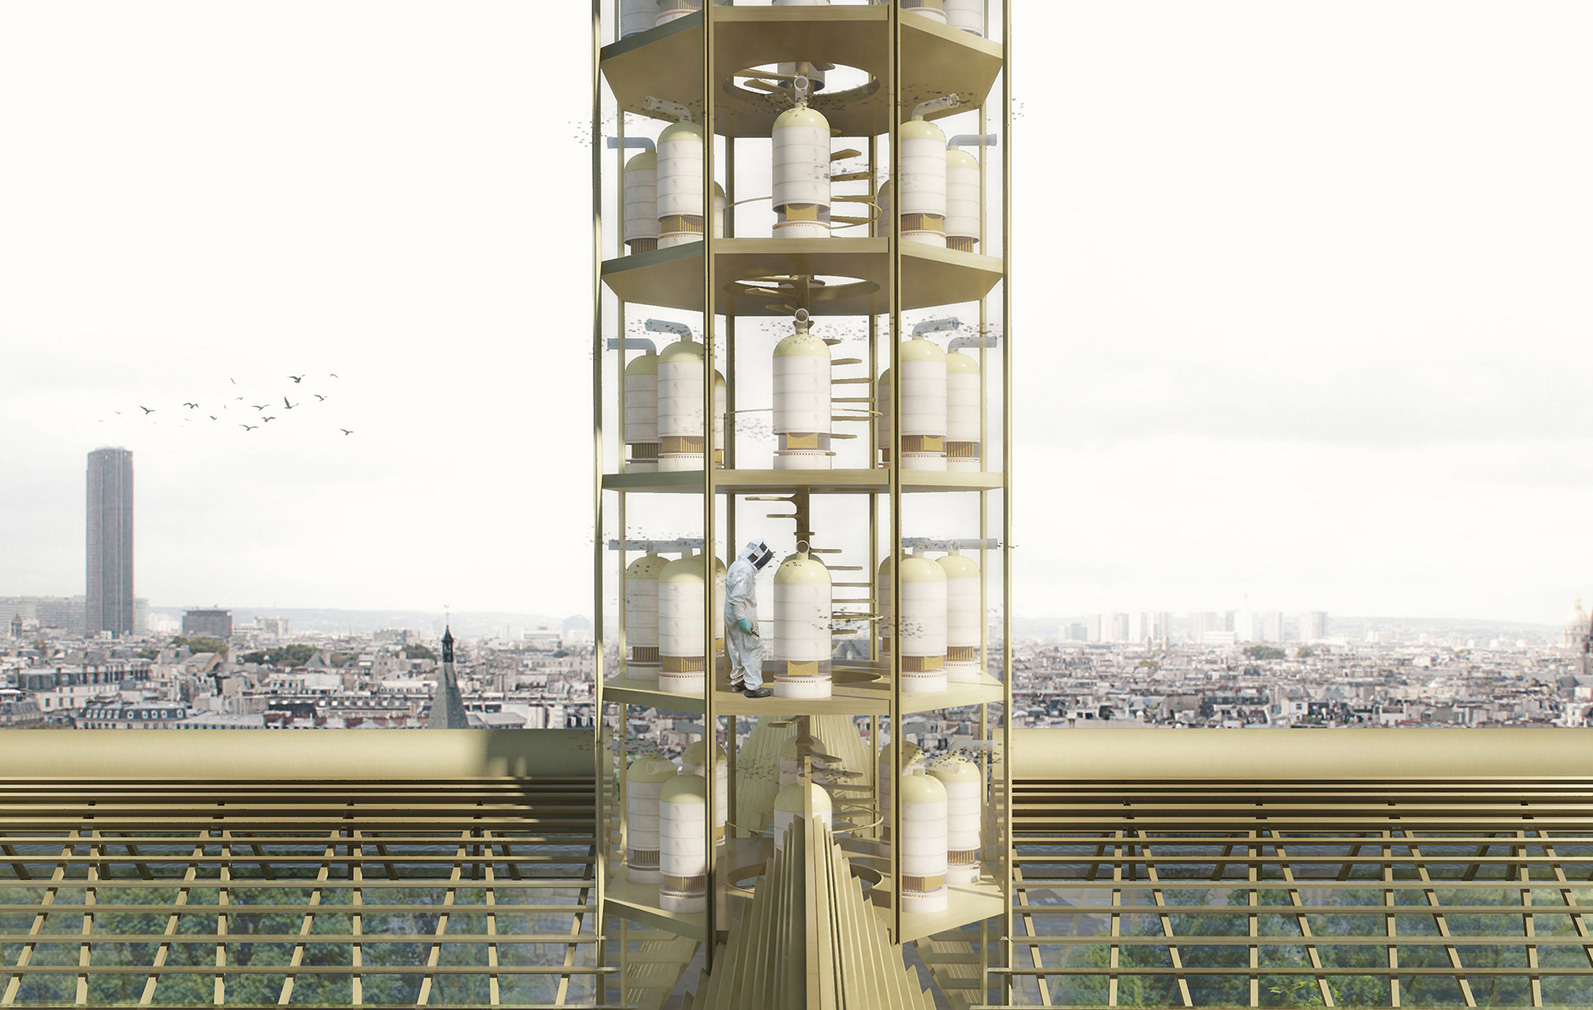 Could Notre-Dame's roof be rebuilt as a giant greenhouse? Studio NAB imagines a new spire as a vertical bee hive